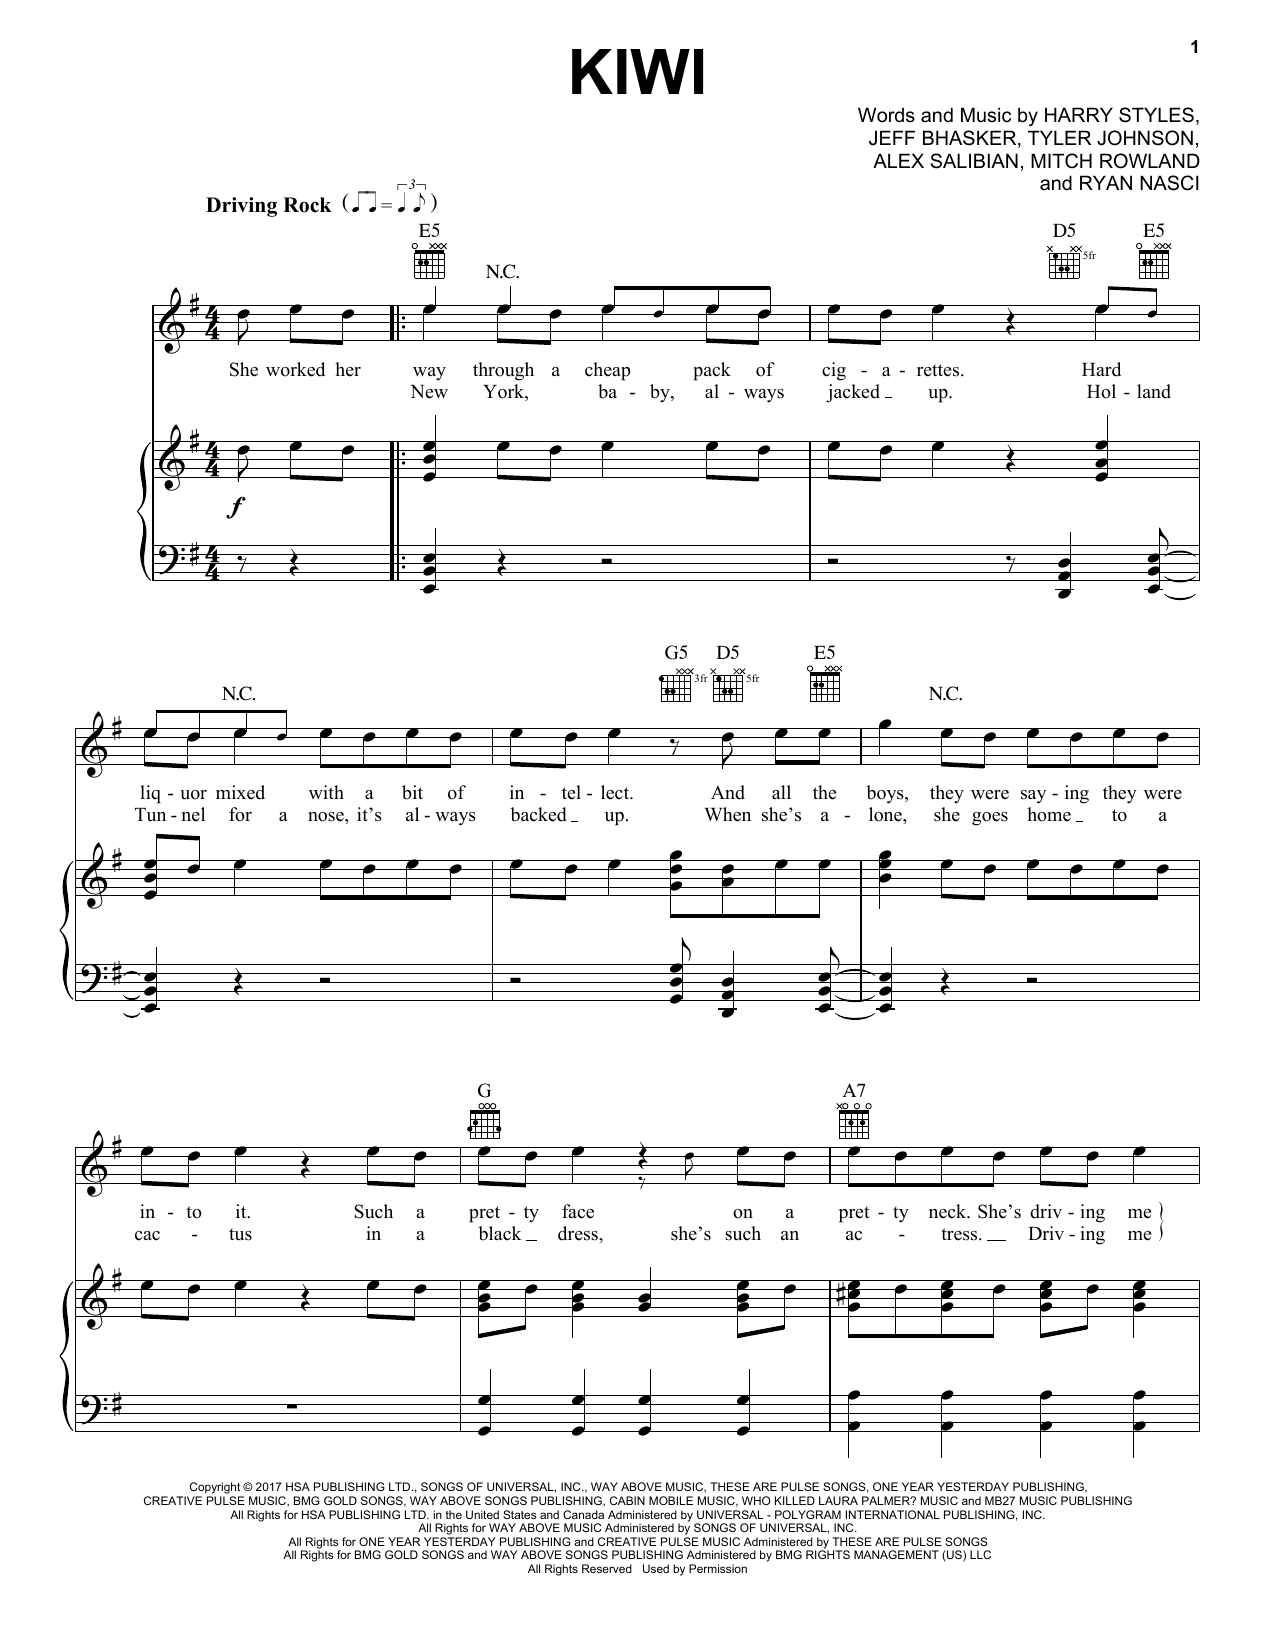 Harry Styles Kiwi sheet music notes and chords. Download Printable PDF.